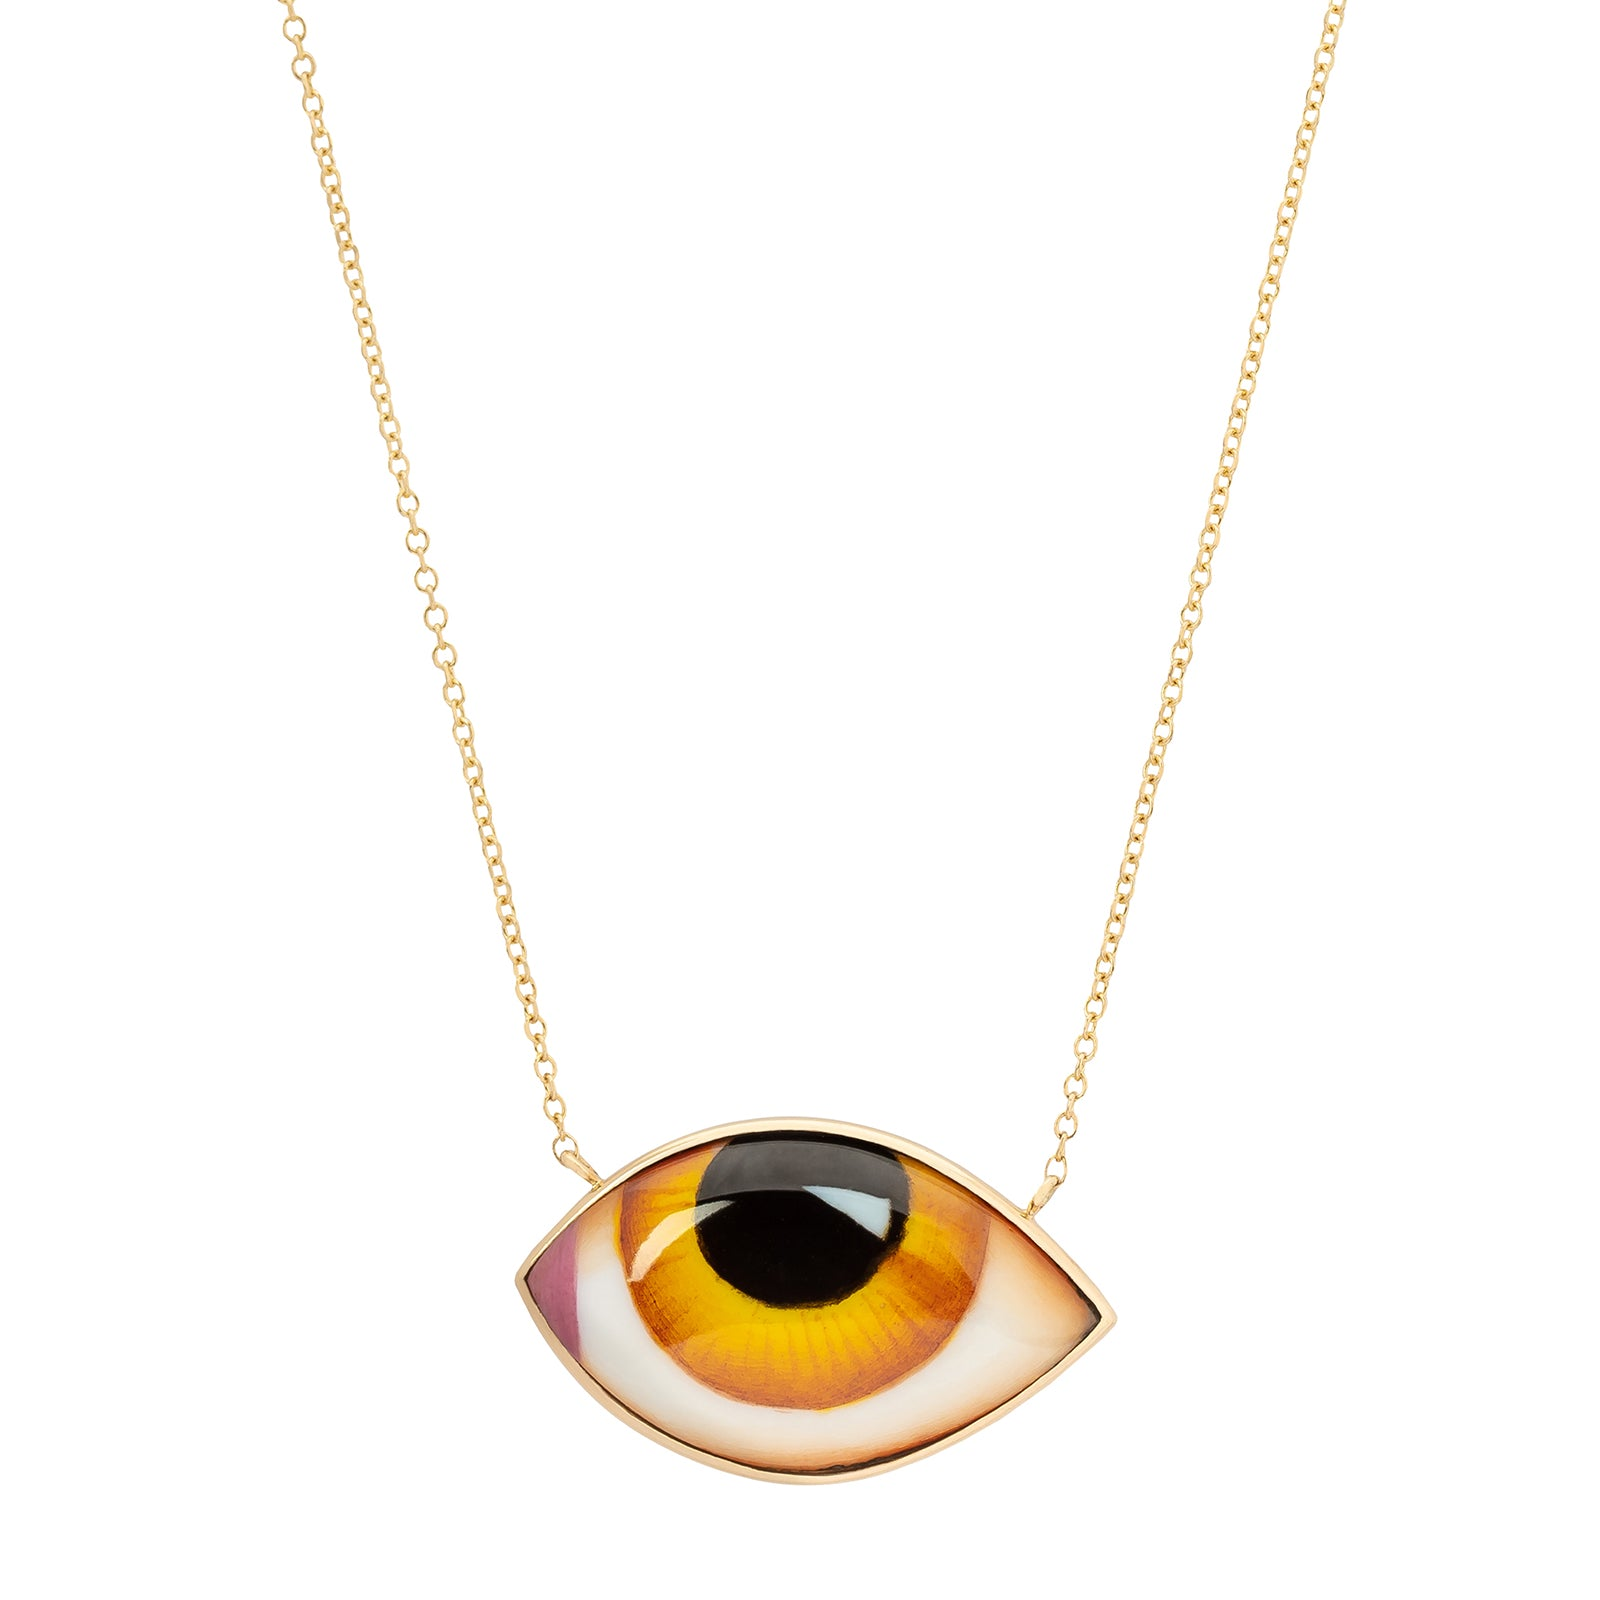 Lito Fine Jewelry Big Yellow Eye Necklace - Necklaces - Broken English Jewelry